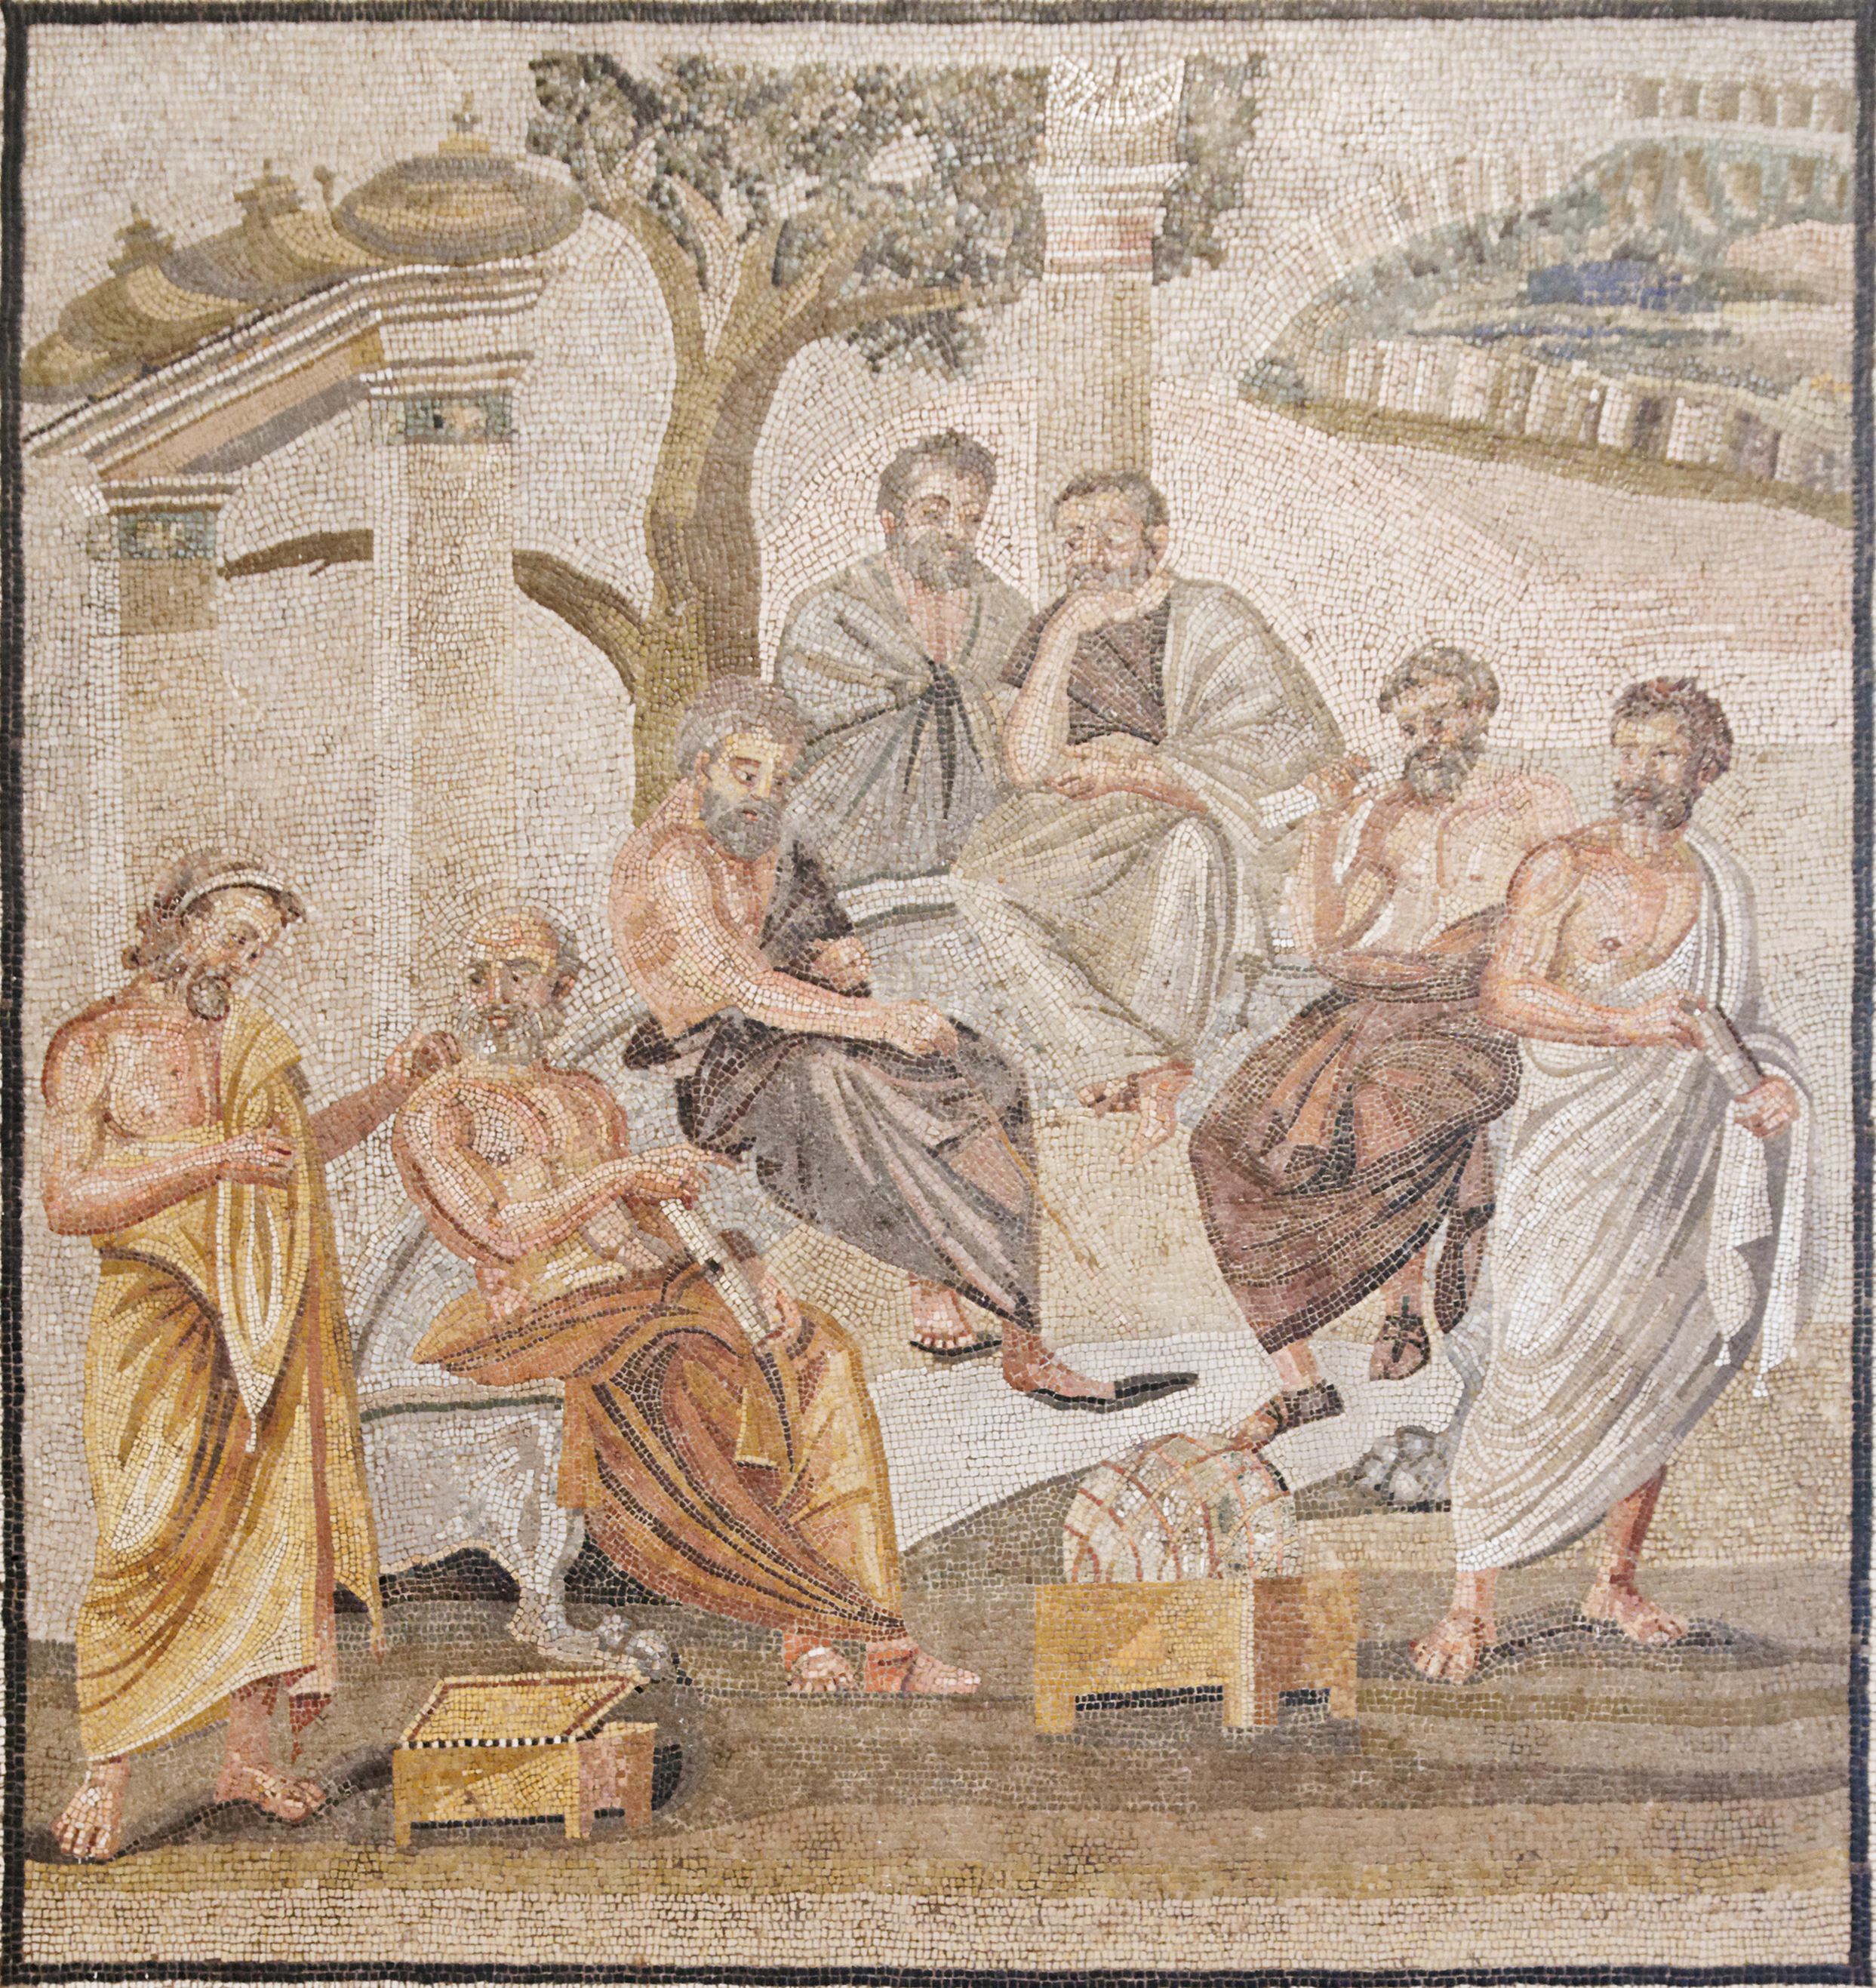 From the House of T. Siminius Stephanus, Pompeii